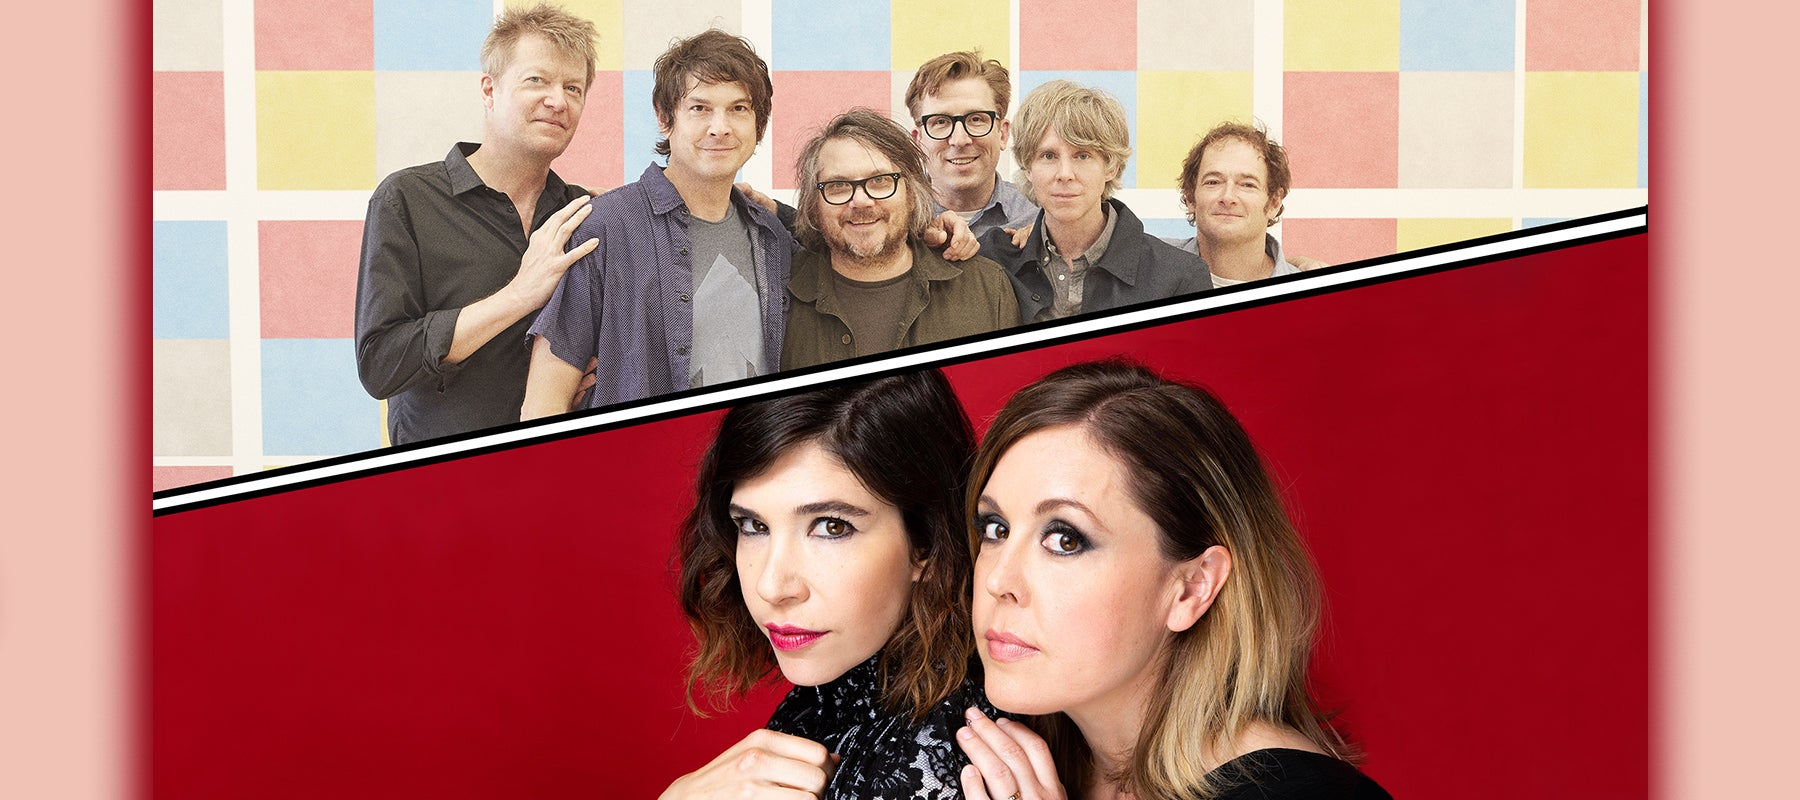 RESCHEDULED: Wilco + Sleater-Kinney: It's Time Summer 2021 Tour